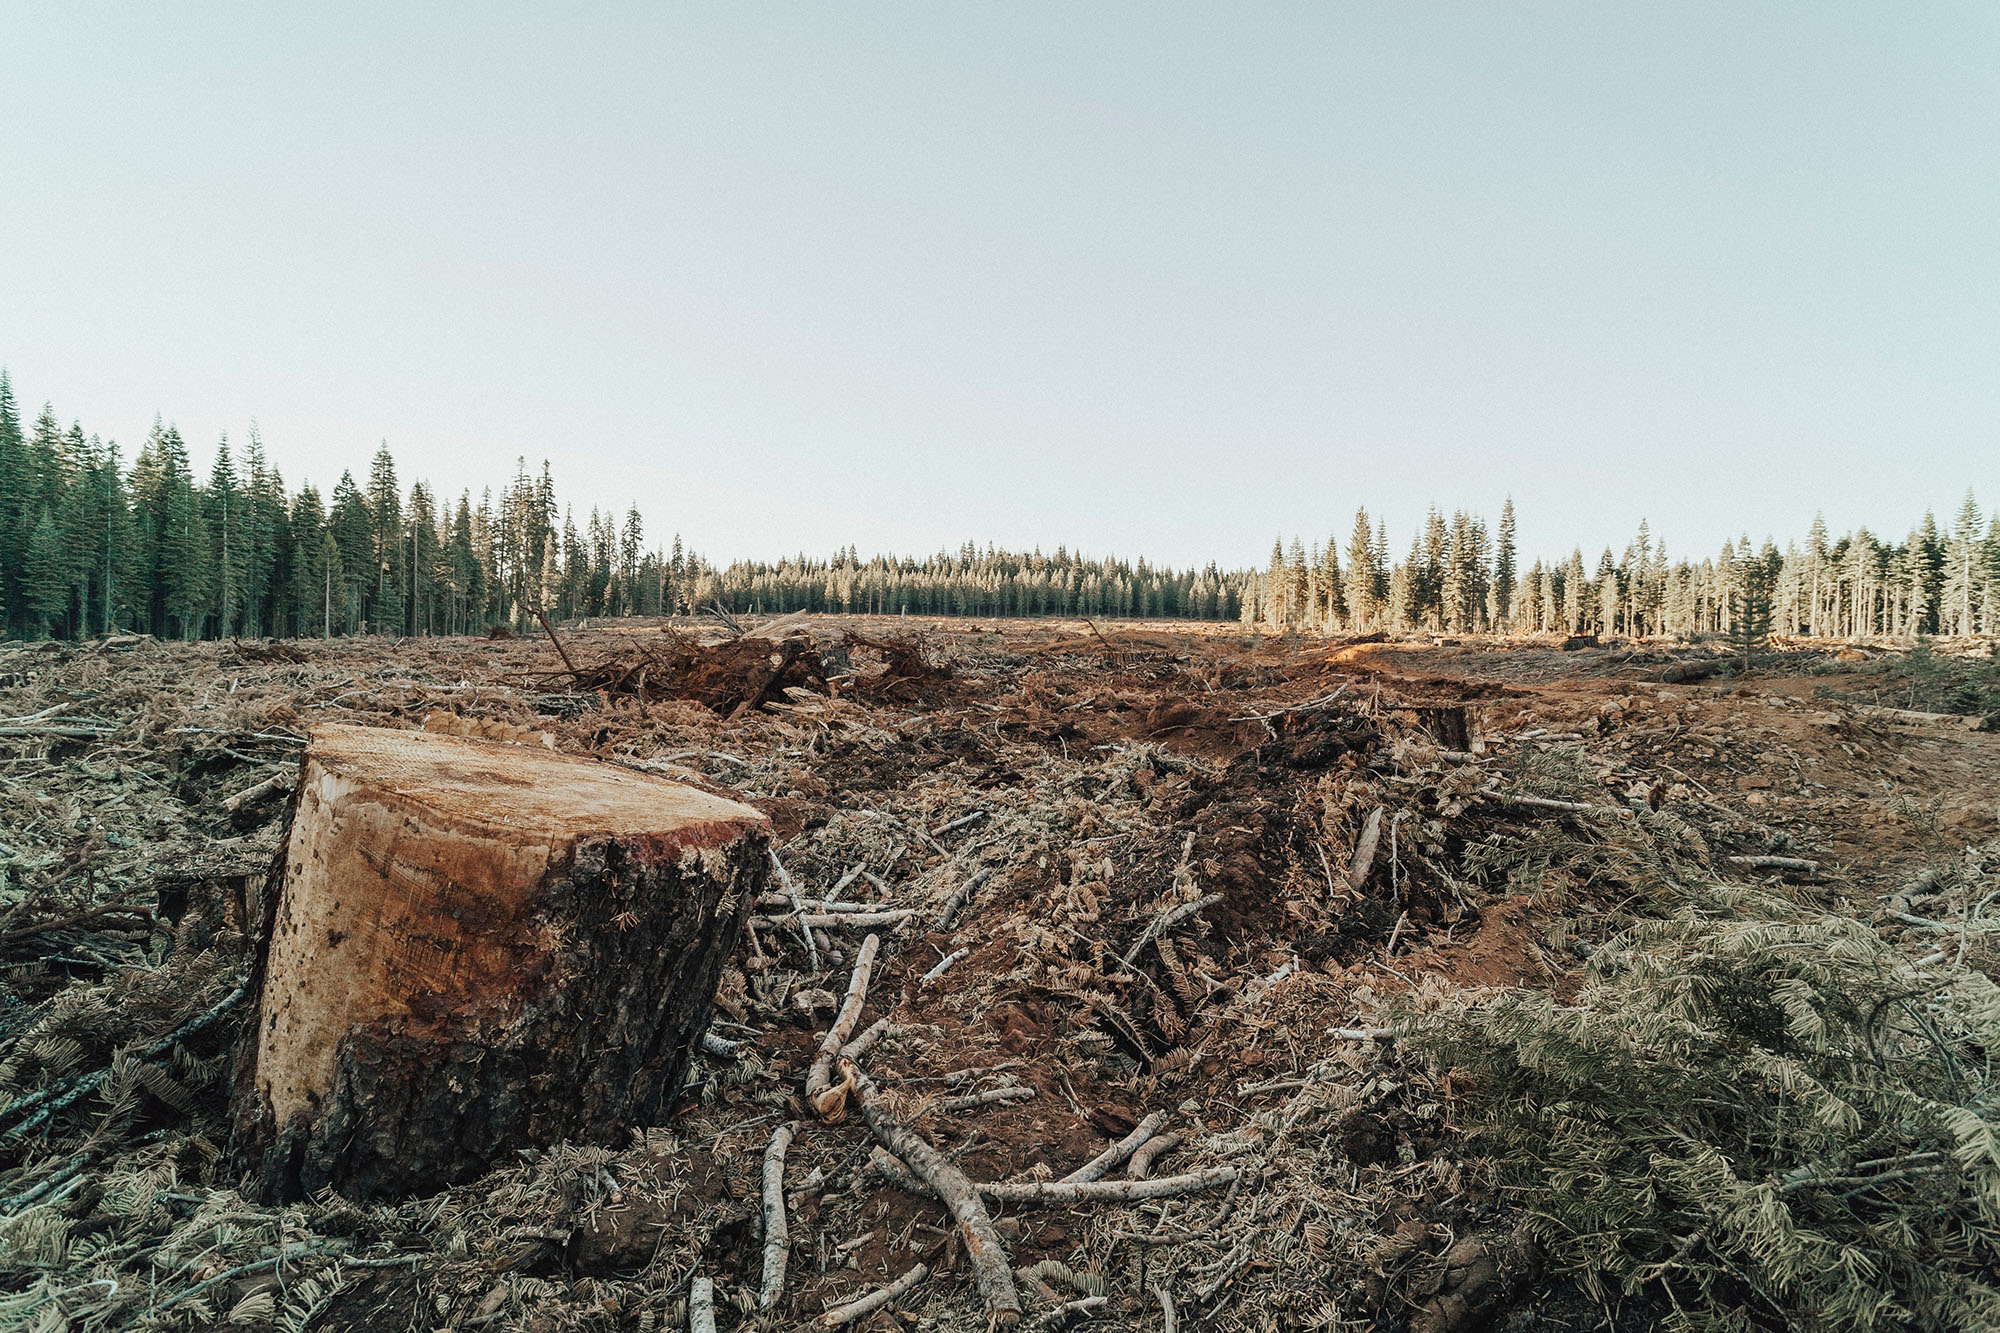 Ecological Grief: Mourning the Loss of Our Planet